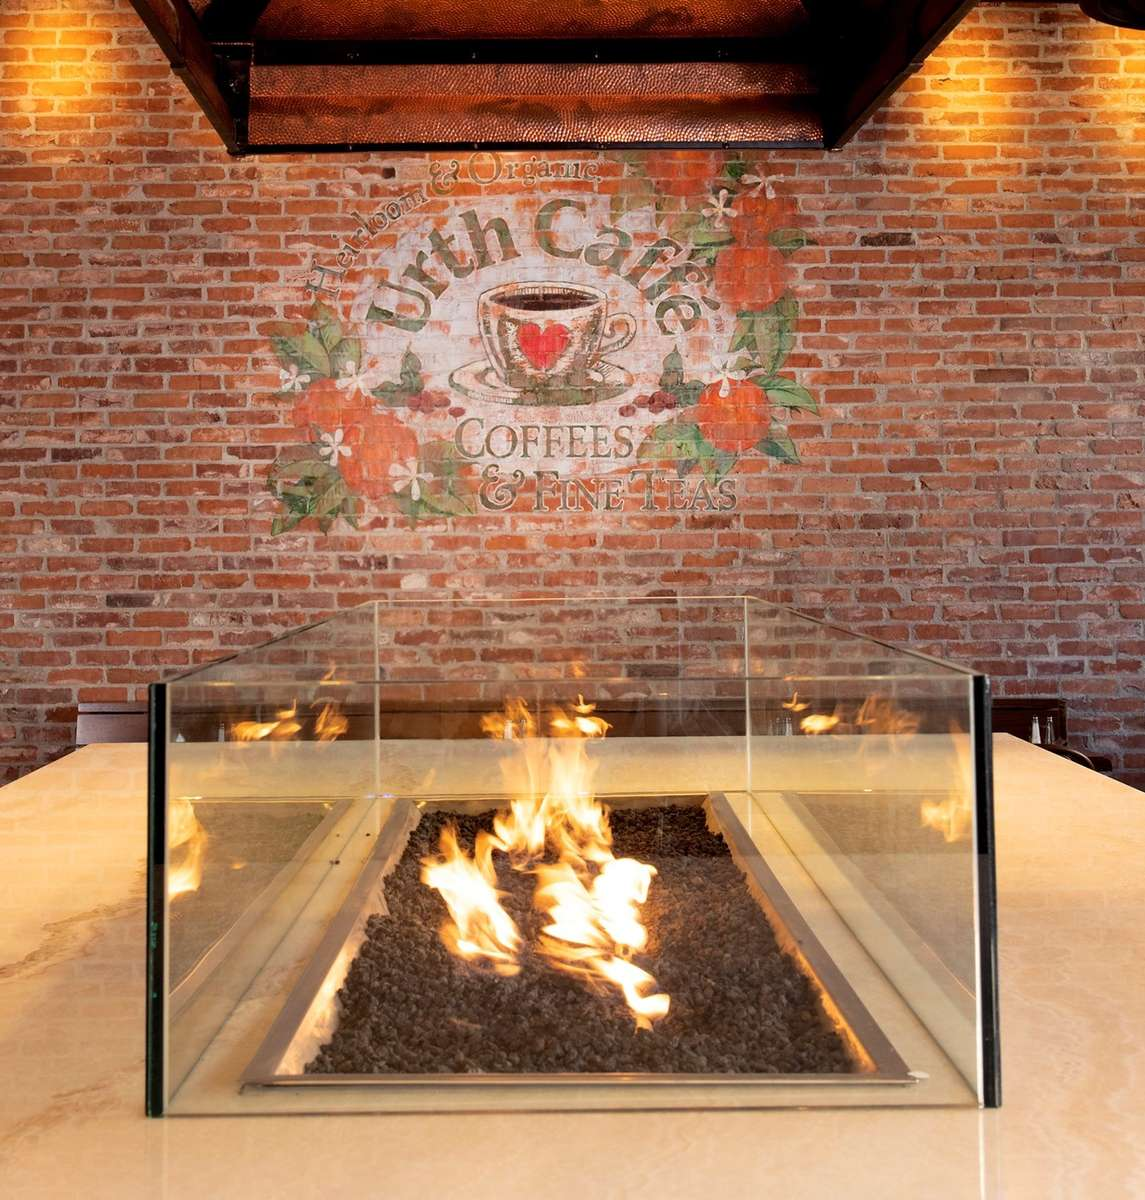 Interior gas fire pit at the center of white marble table. Faded Urth Orange logo is on brick wall in the back.